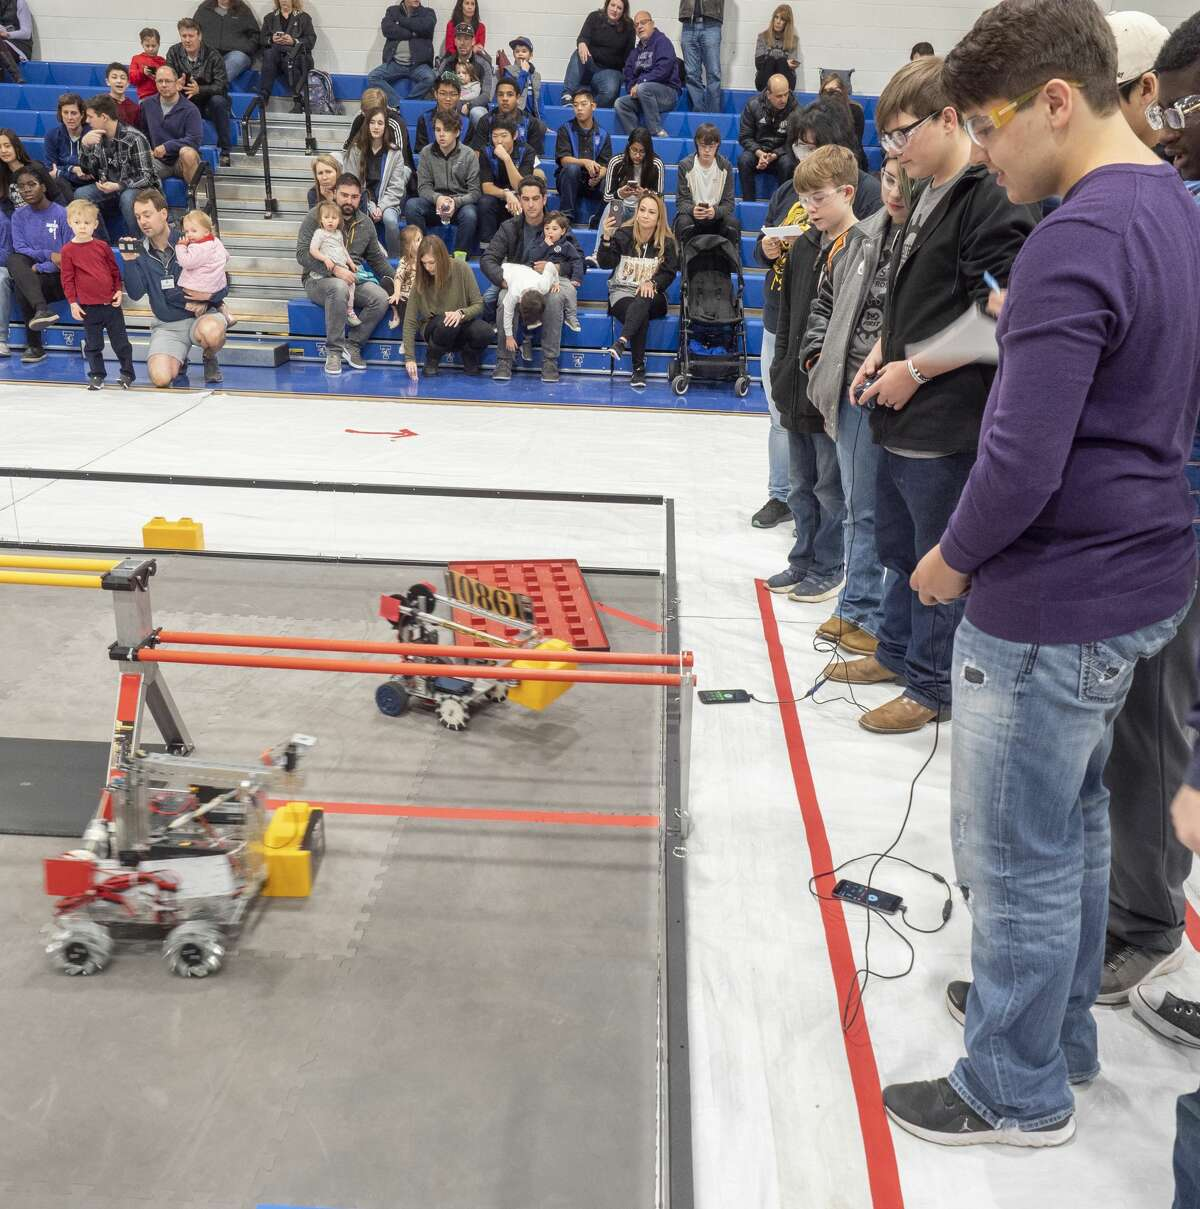 Members of Midland High's Insane Boltz and UTPB Stem Academy's Robo Rampage work together in one of the competitions 01/18/2020 during the First Tech Challenge, SkyStone, building a structure on a platform in Beal Gym at Trinity School. Tim Fischer/Reporter-Telegram